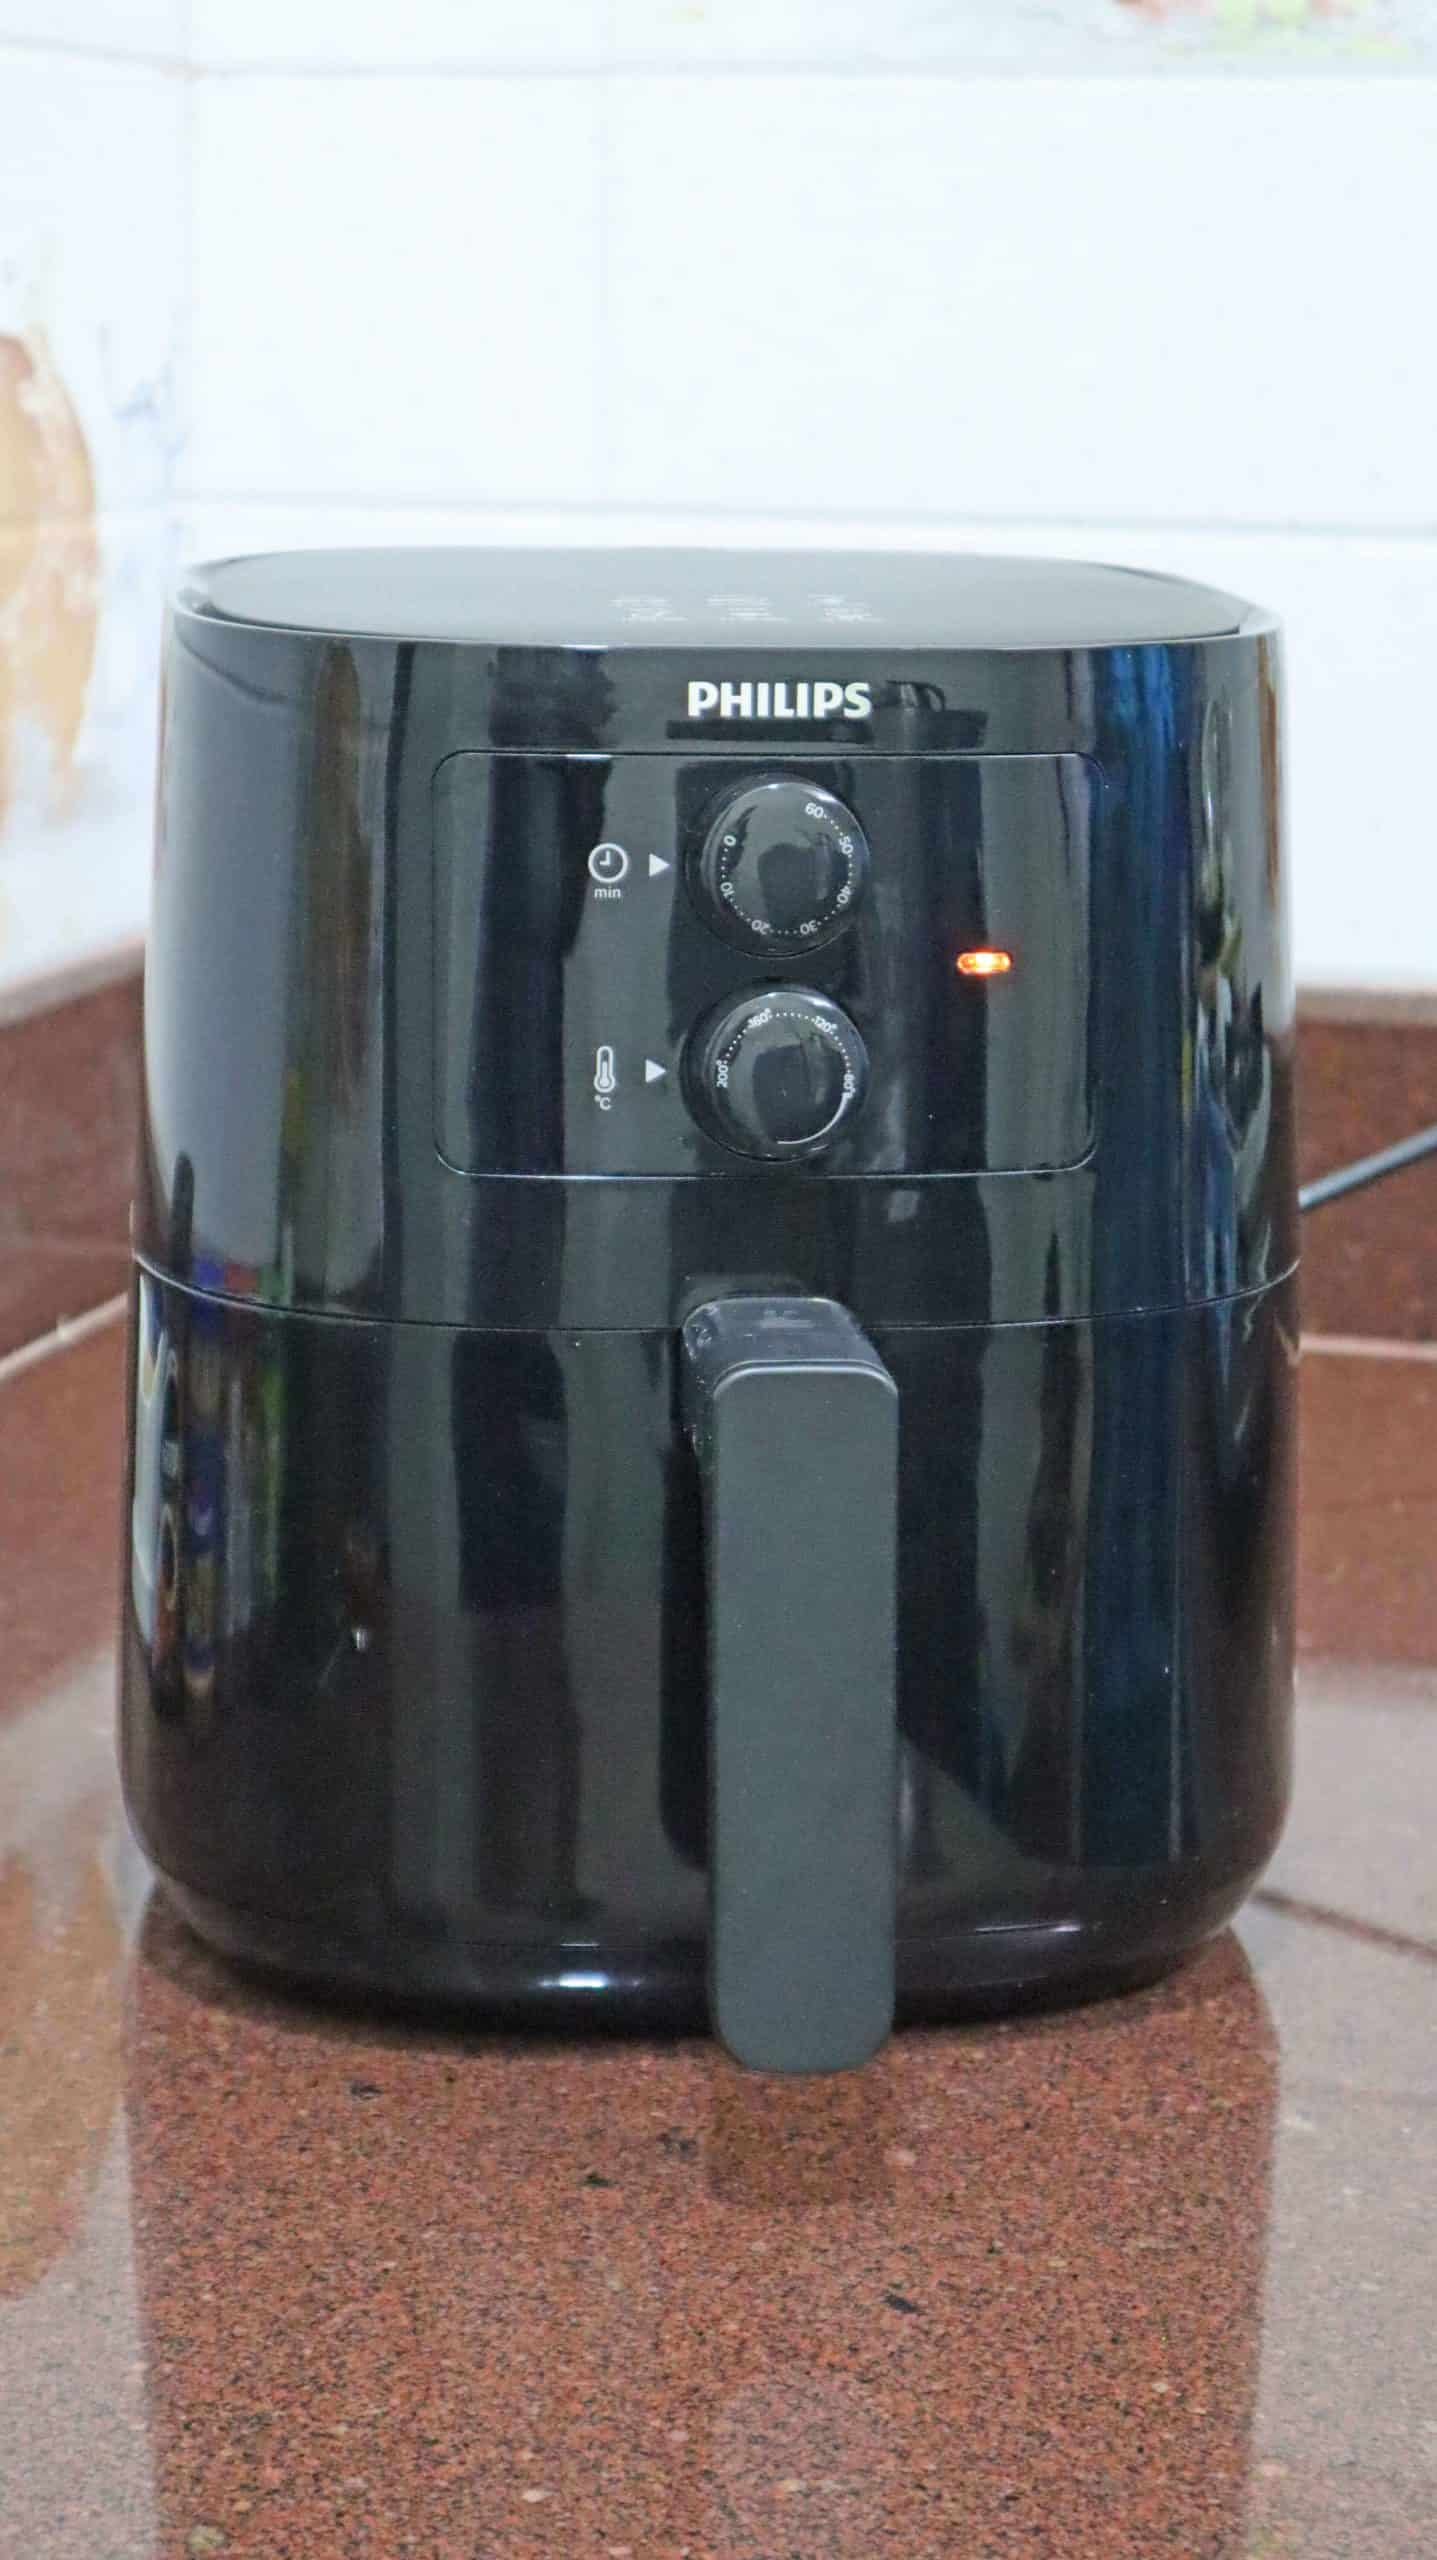 How to clean air fryer